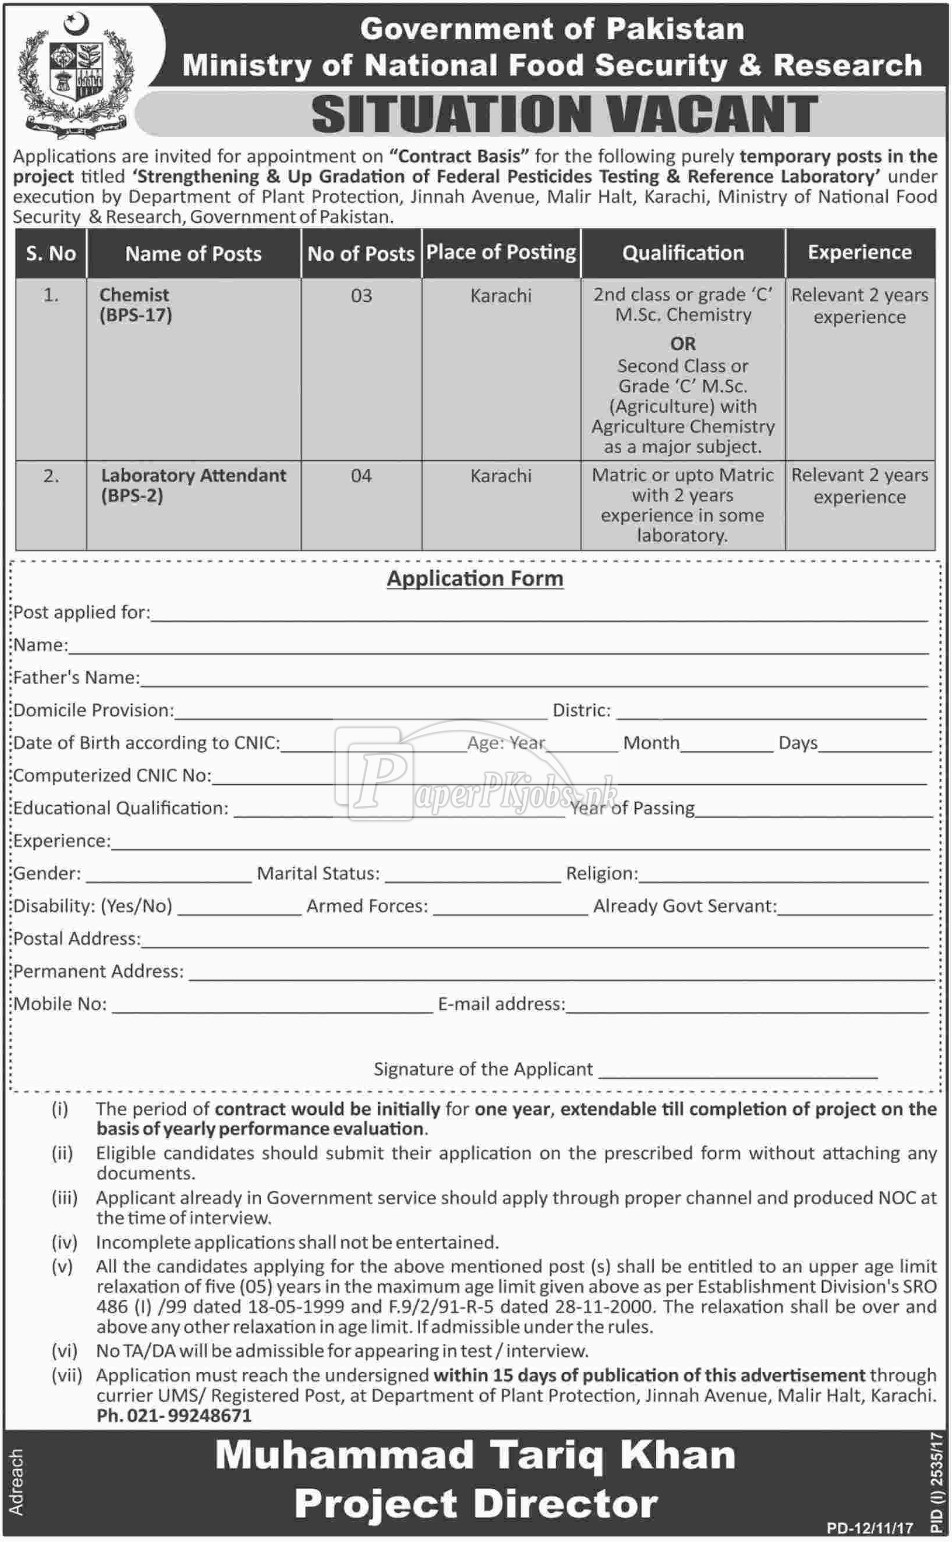 Ministry of National Food Security & Research Govt of Pakistan Jobs 2017